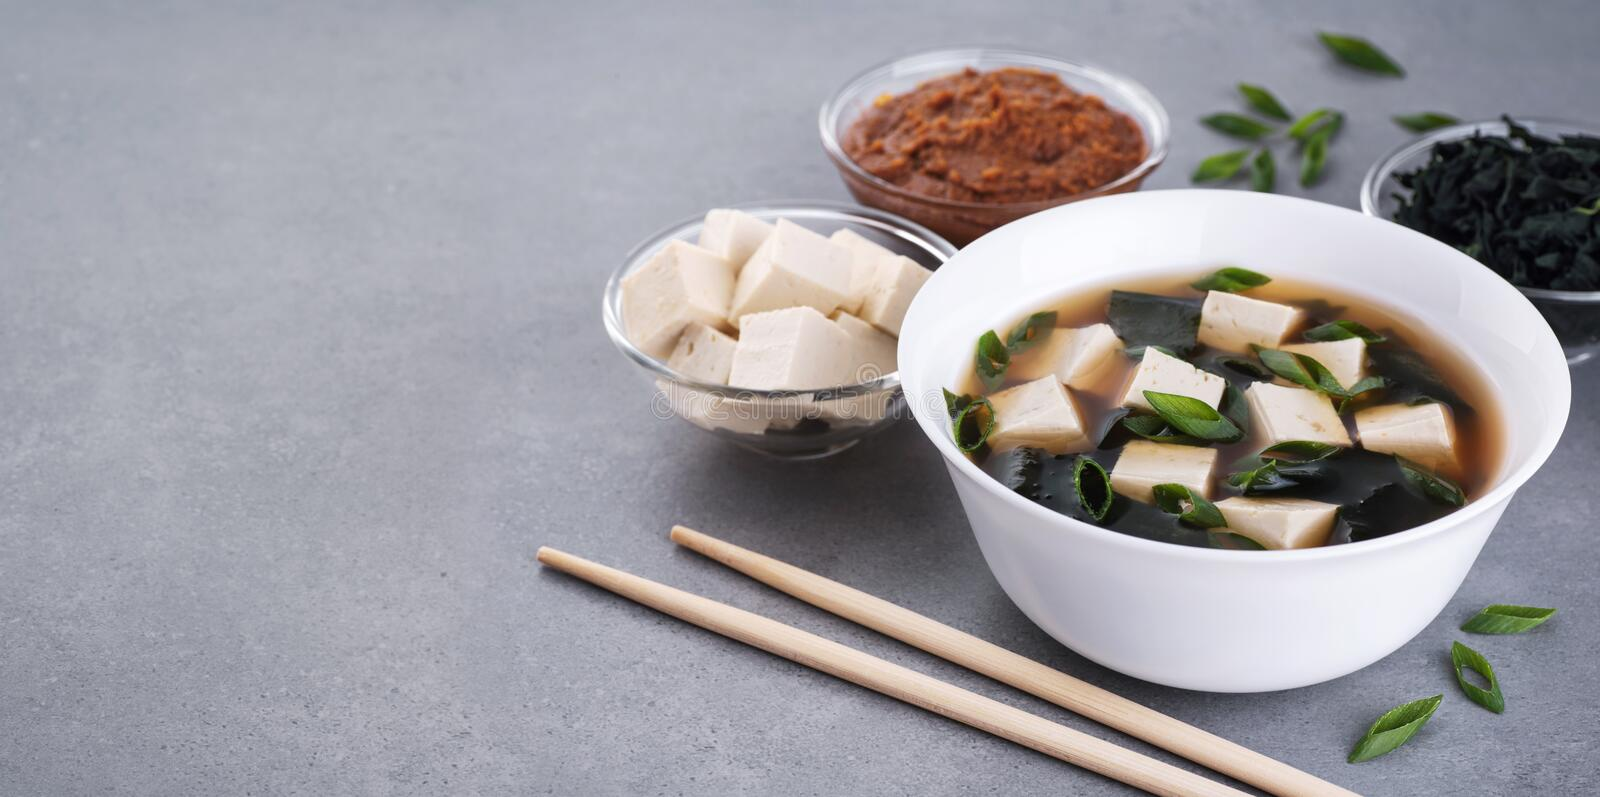 Bowl with miso soup, wakame seaweed, miso pasta, tofu and chopsticks on a gray background stock photography